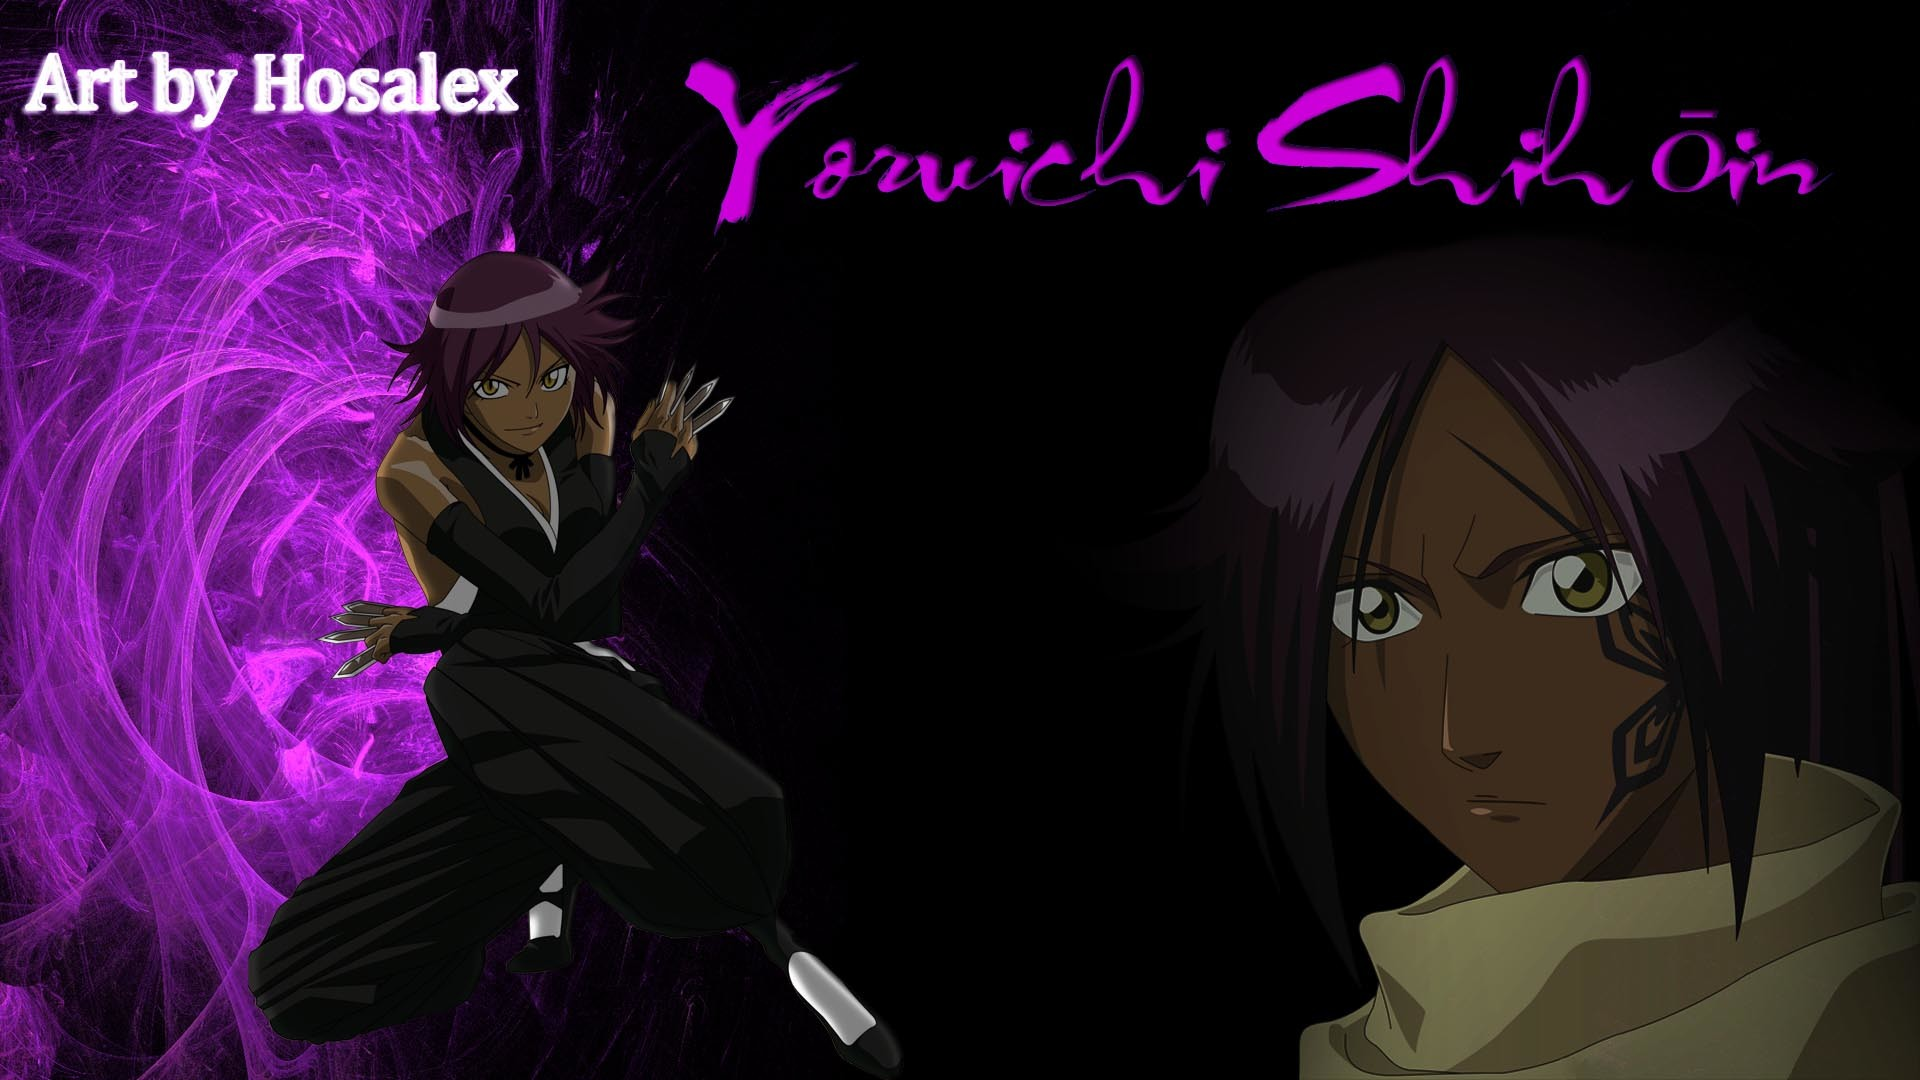 1920x1080 Yoruichi shihouin - wallpaper by Hosalex Yoruichi shihouin - wallpaper by  Hosalex